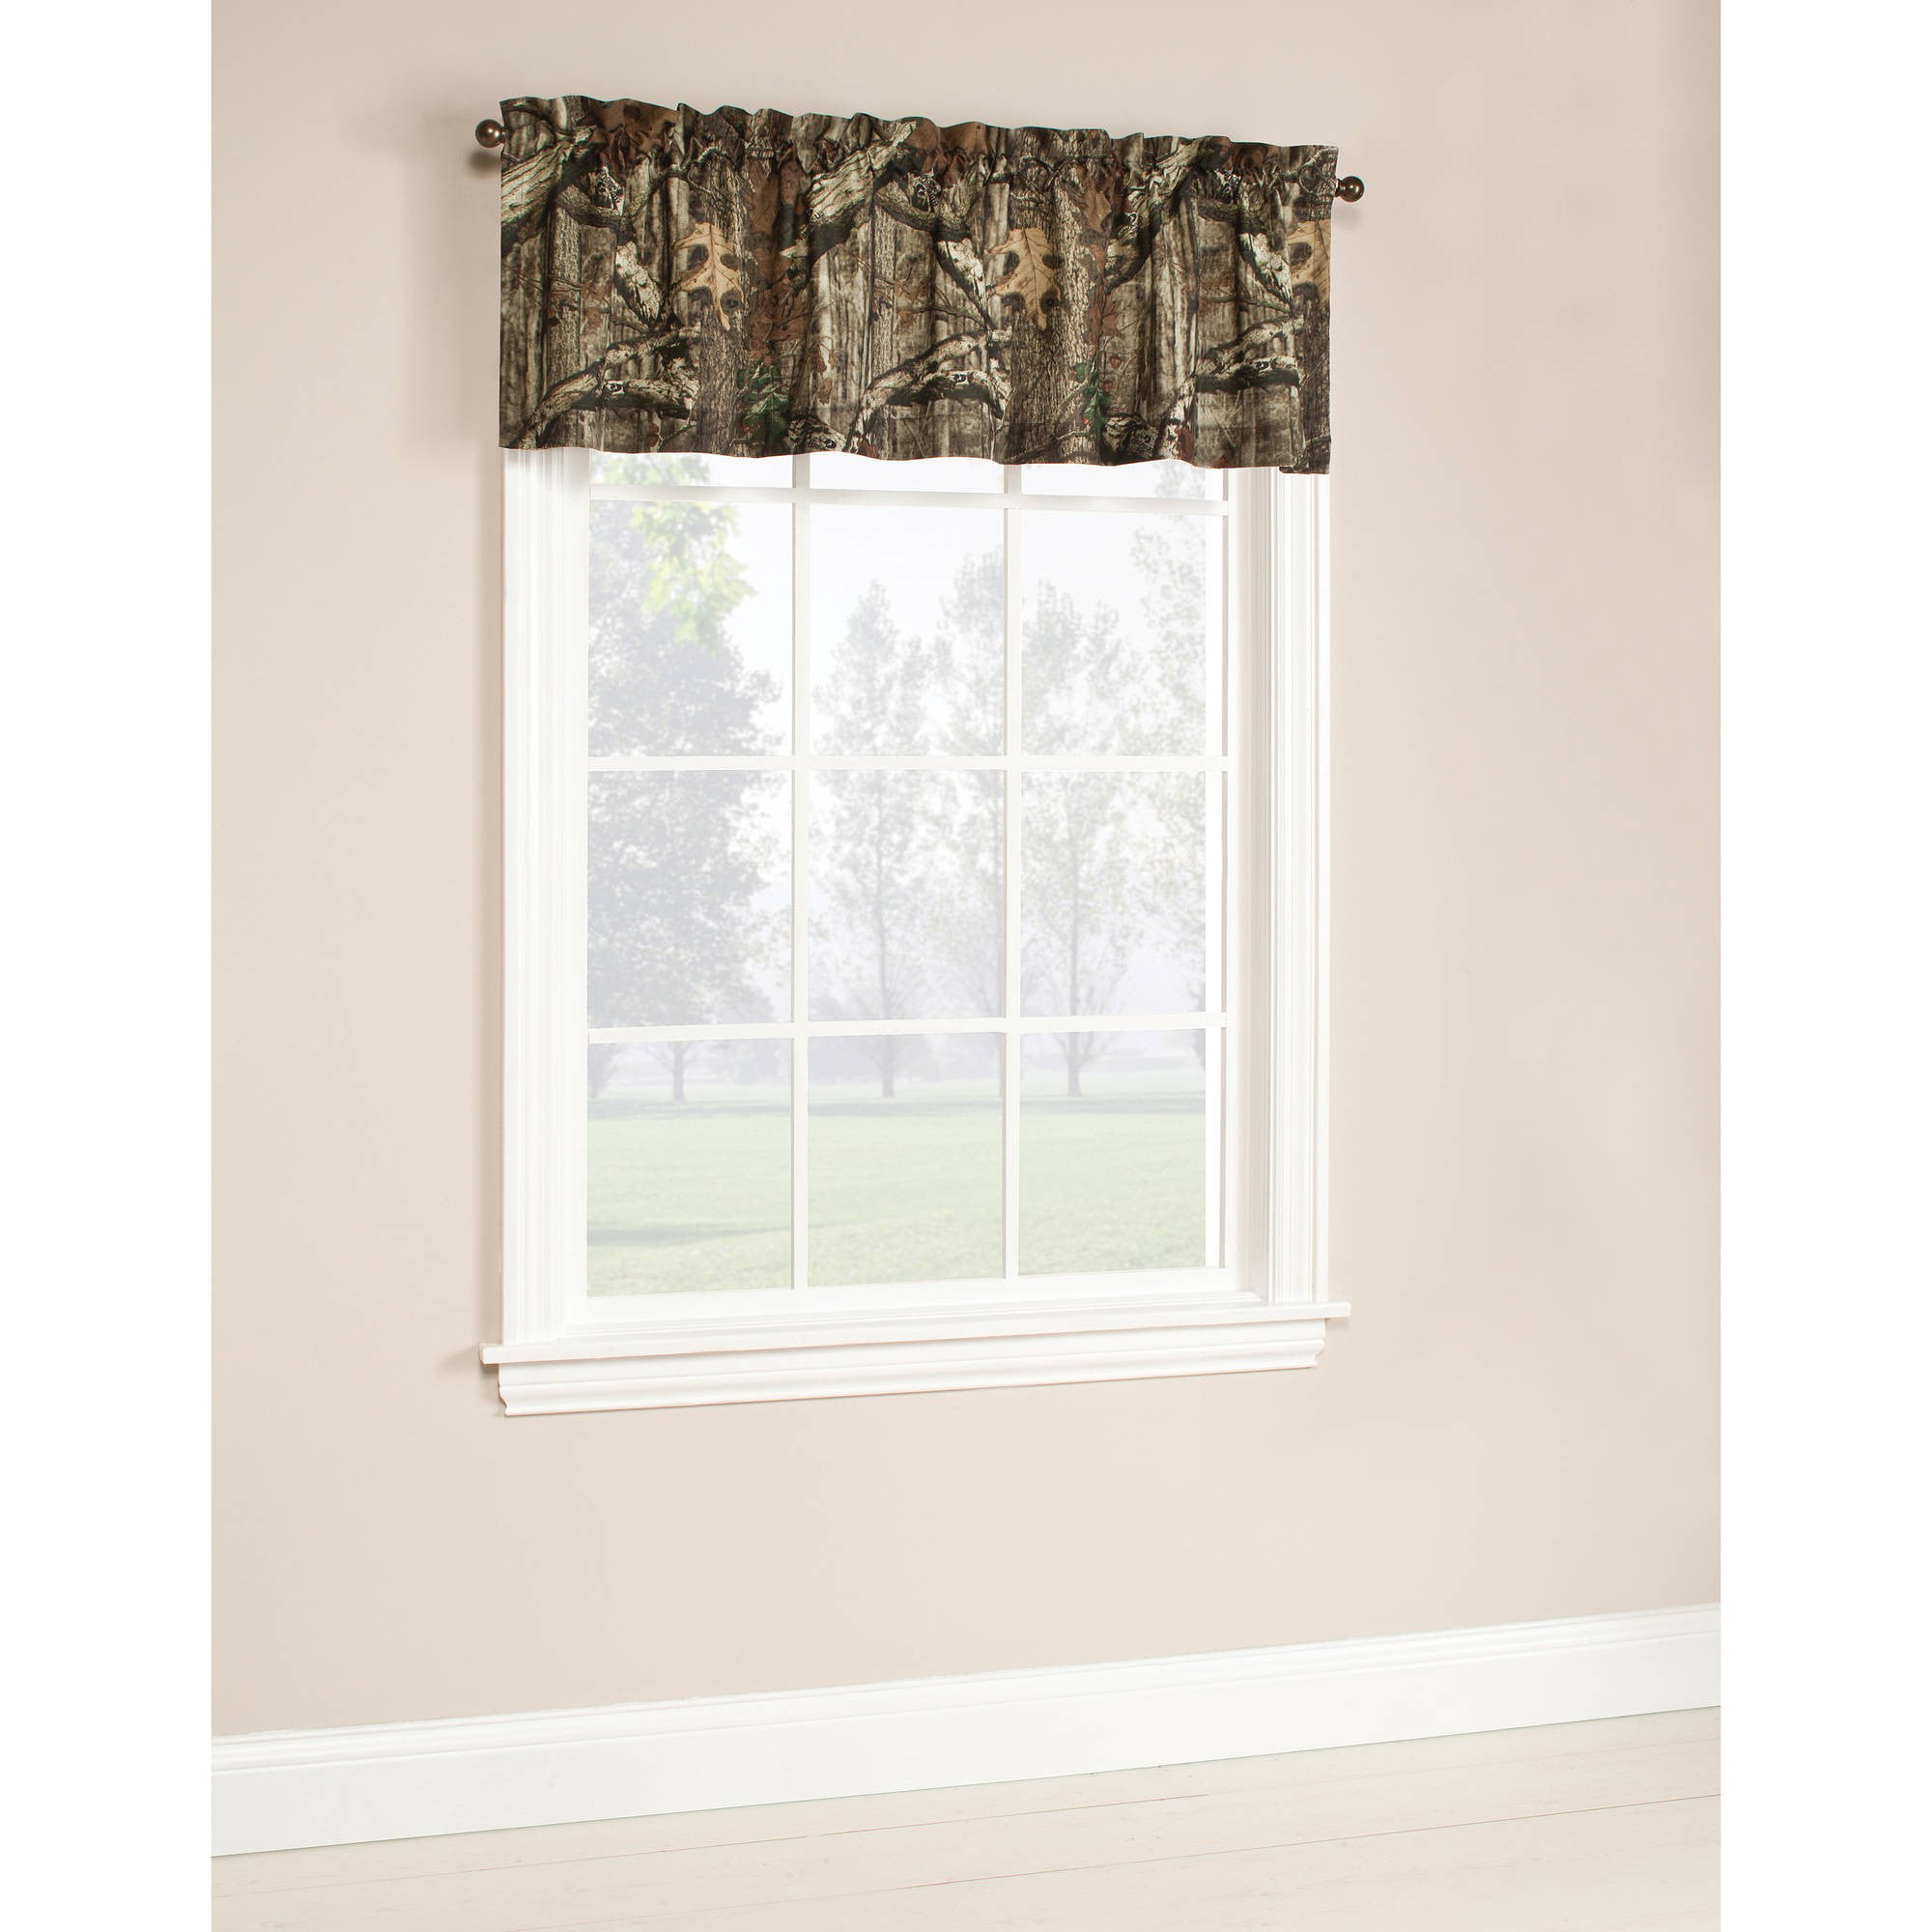 or break oak valance walmart infinity print camo set curtains com drapes window ip kitchen camouflage of up mossy